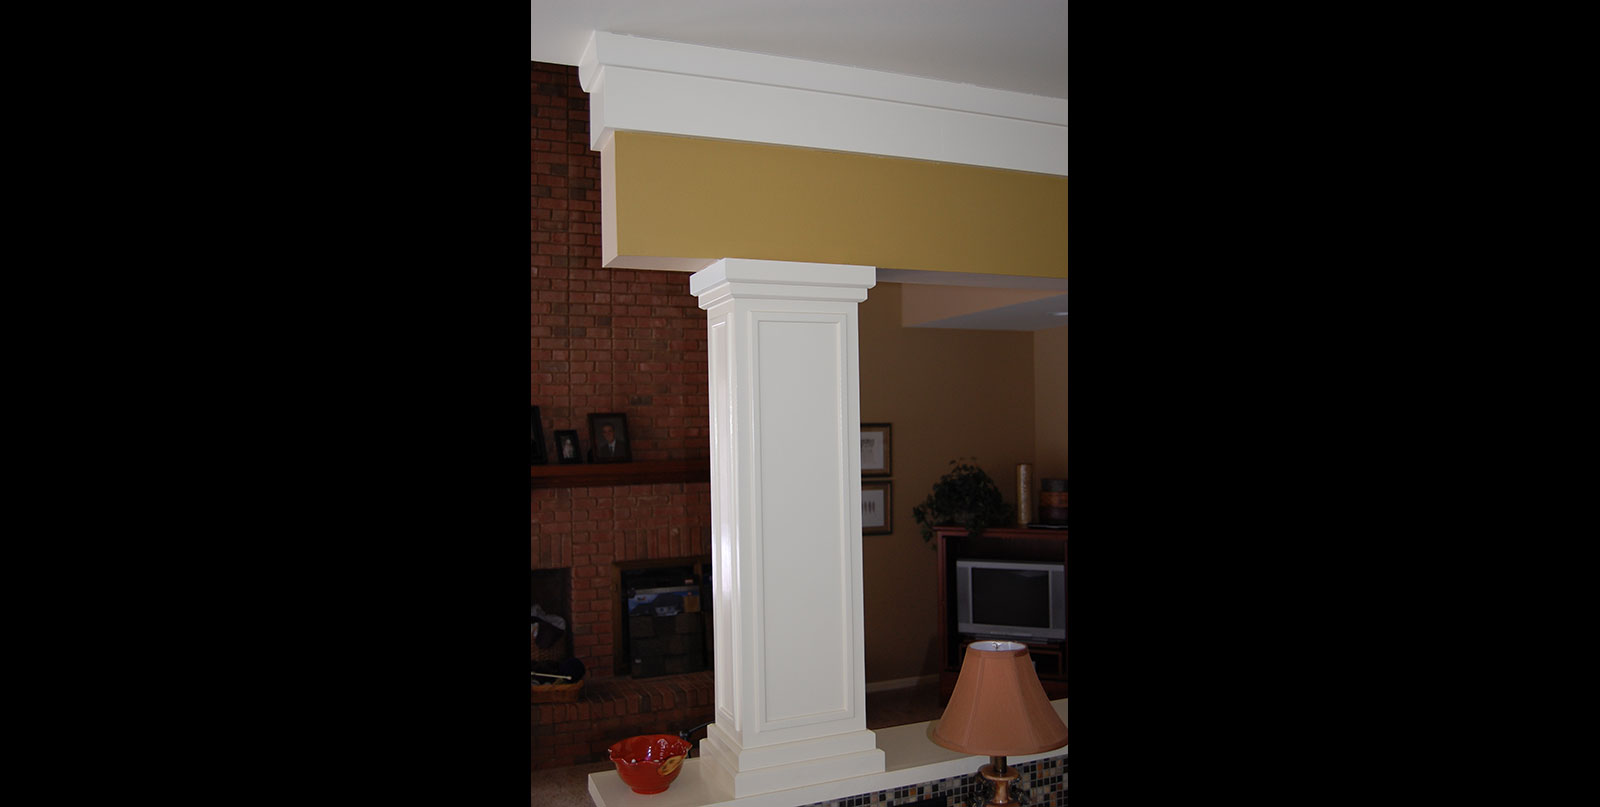 Covenant Construction Group - Complete Home Remodel, After, Custom Pillar Detail - Ann Arbor, MI